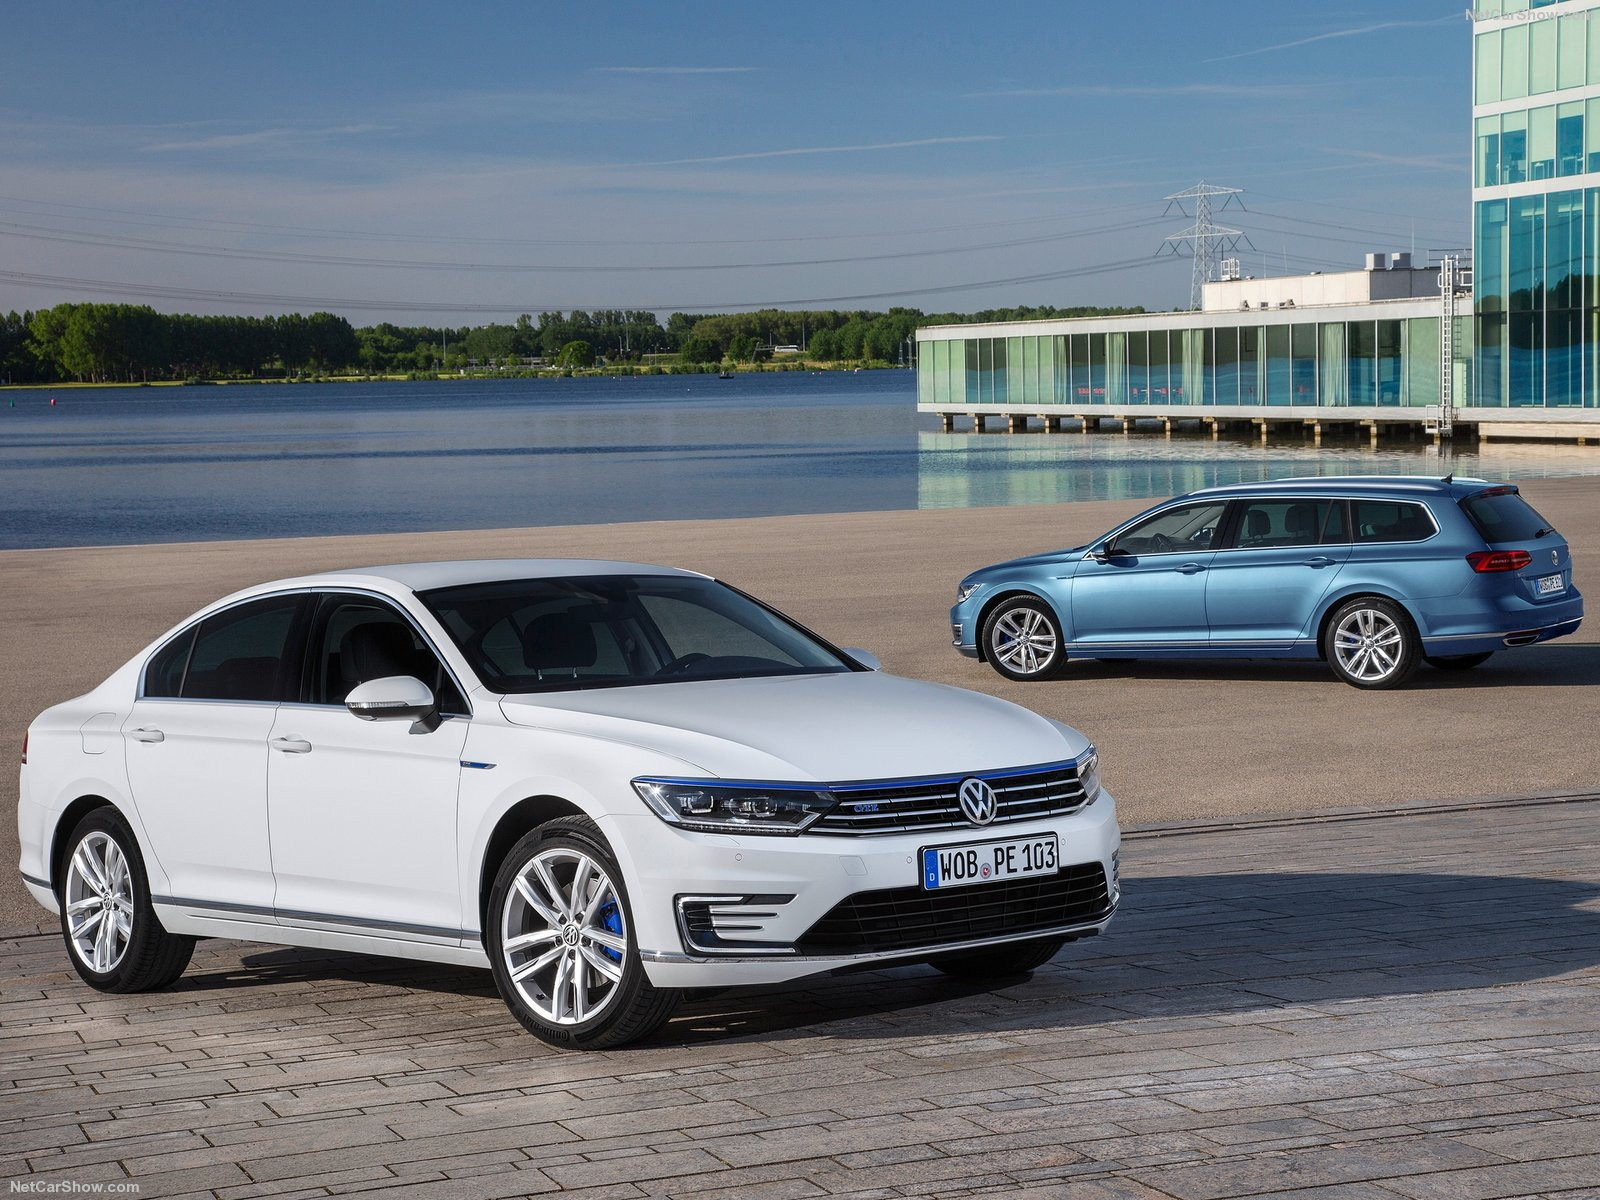 Volkswagen Passat GTE photo 145922